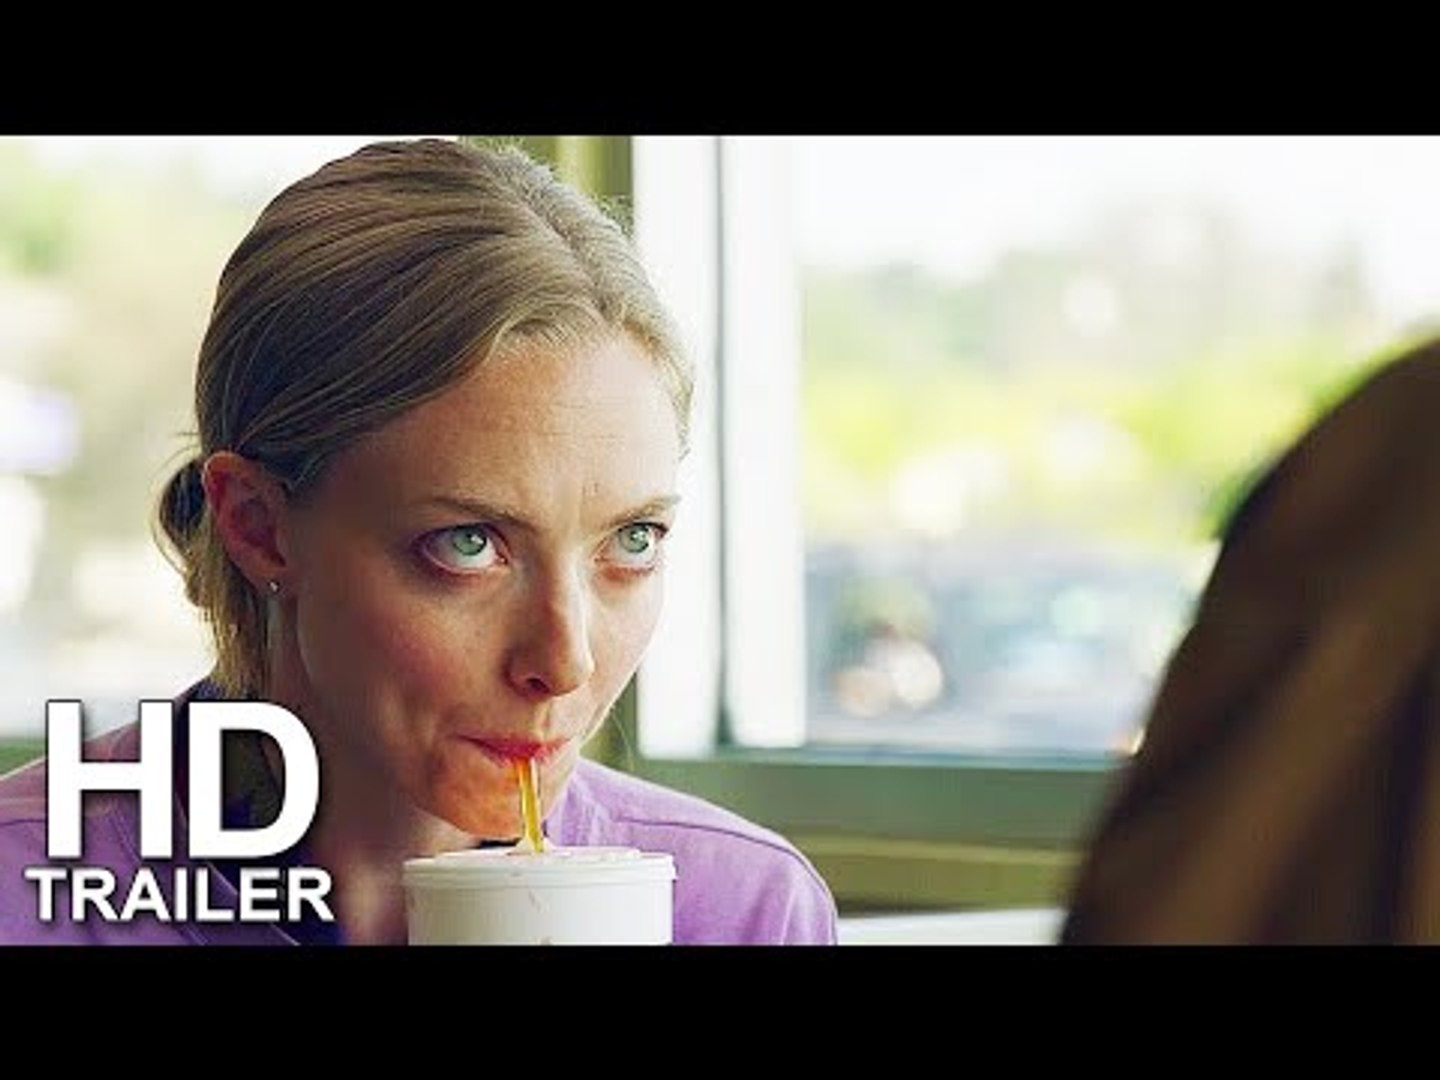 THE CLAPPER Official Trailer (2018) Ed Helms, Amanda Seyfried Comedy Movie HD